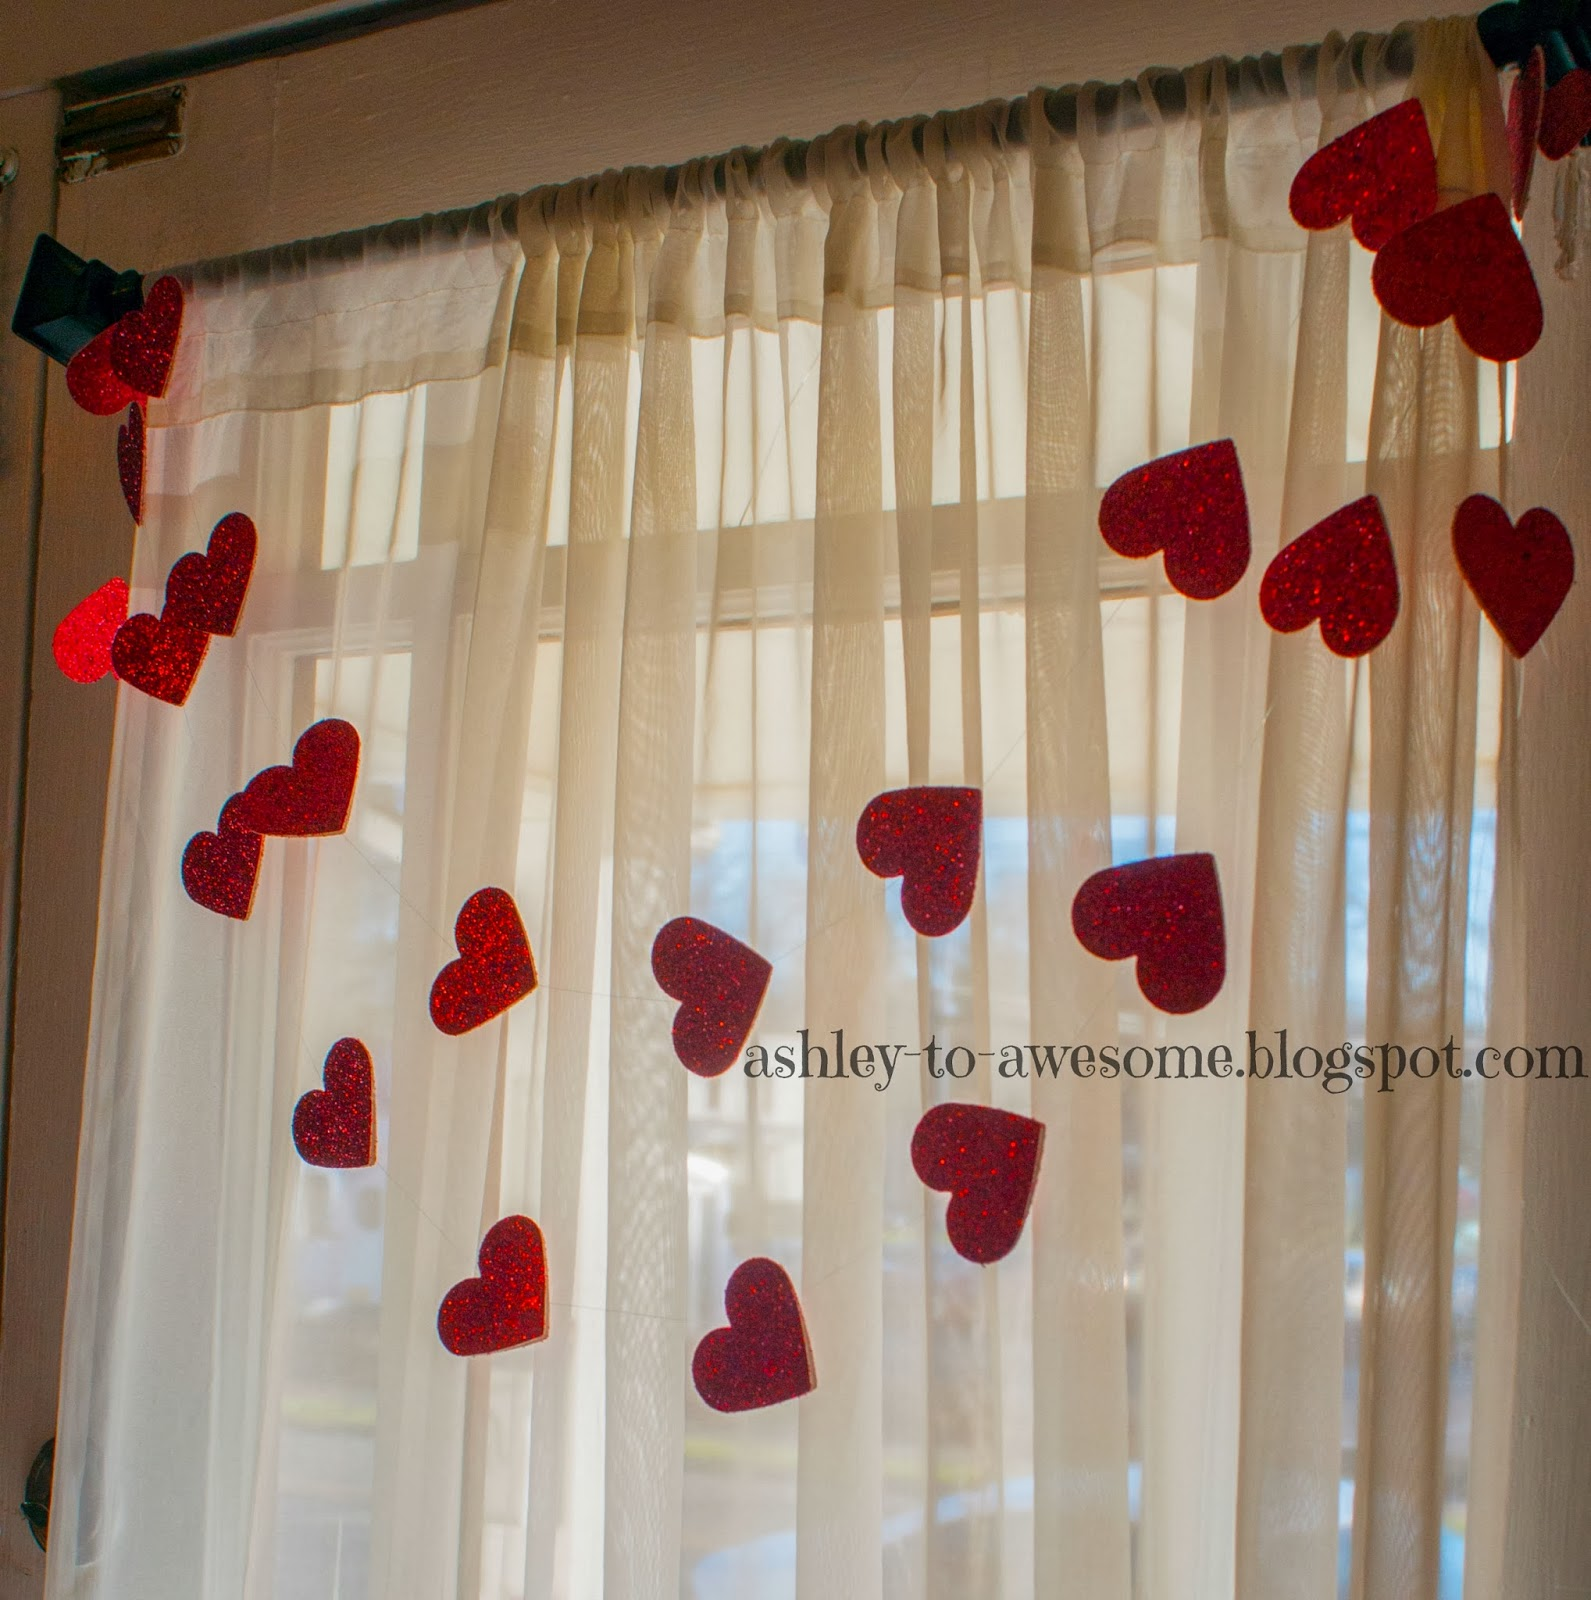 Other Than That, This Garland Was Incredibly Easy To Make And Looks  Absolutely Adorable Hanging In Our Door.